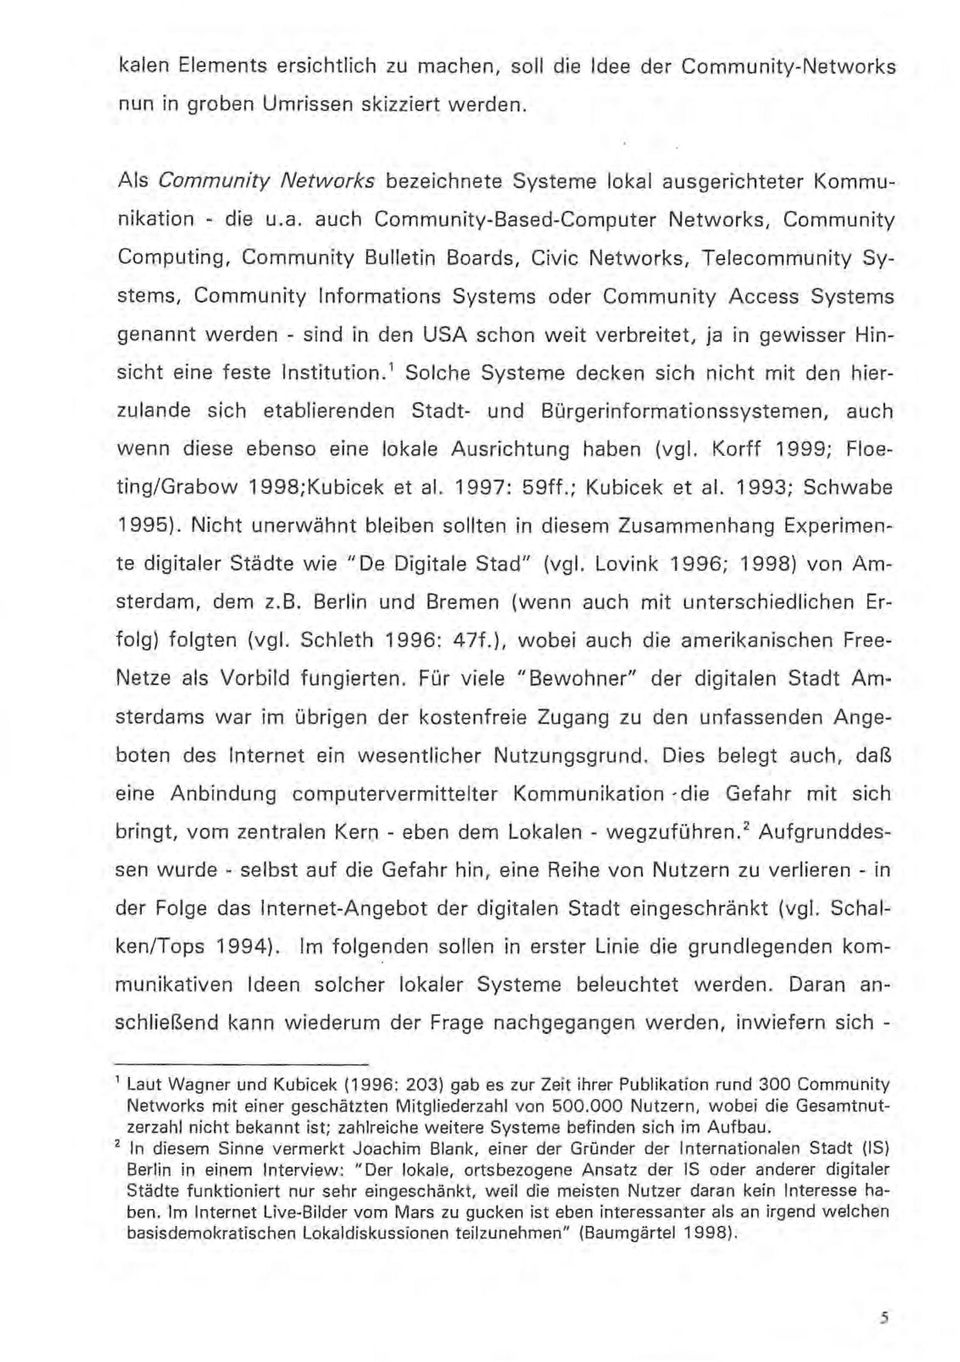 ausgerichteter Kommunikation - die u.a. auch Community-Based-Computer Networks, Community Computing, Community Bulletin Boards, Civic Networks, Telecommunity Systems, Community Informations Systems